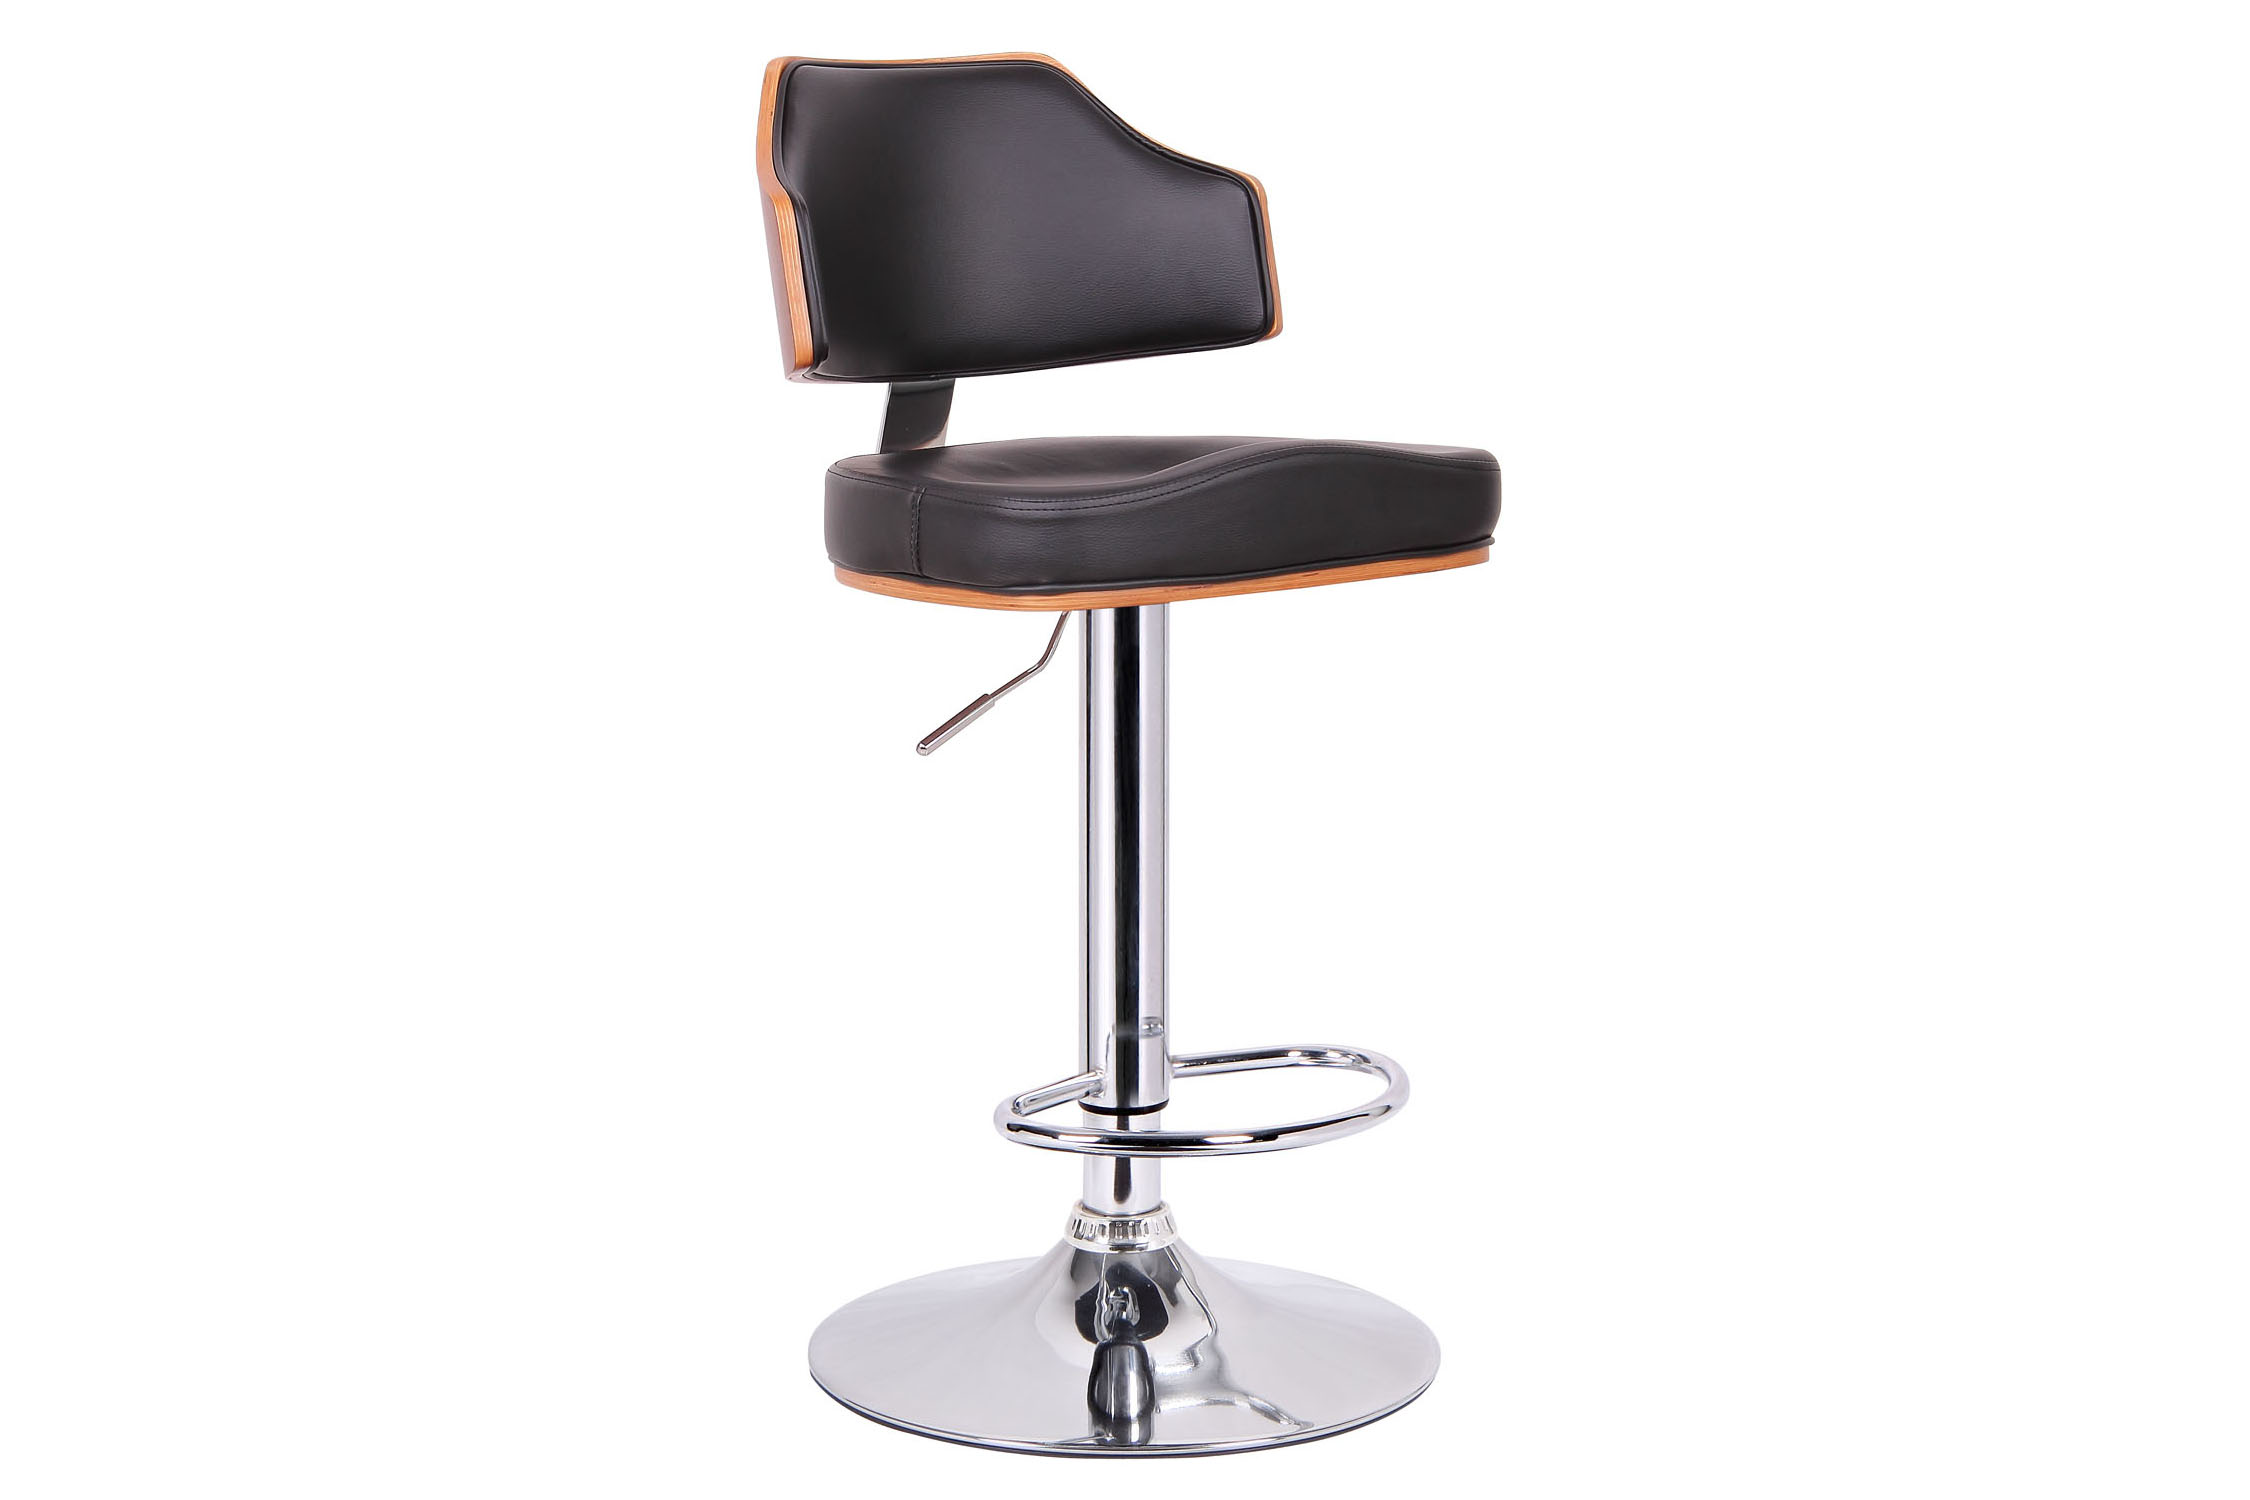 Baxton Studio Cabell Walnut and Black Modern Bar Stool Cabell Walnut and Black Modern Bar Stool ,IESD-2159-walnut/black-PSTL,compare Cabell Walnut and Black Modern Bar Stool ,best price on Cabell Walnut and Black Modern Bar Stool ,discount  Cabell Walnut and Black Modern Bar Stool ,cheap  Cabell Walnut and Black Modern Bar Stool